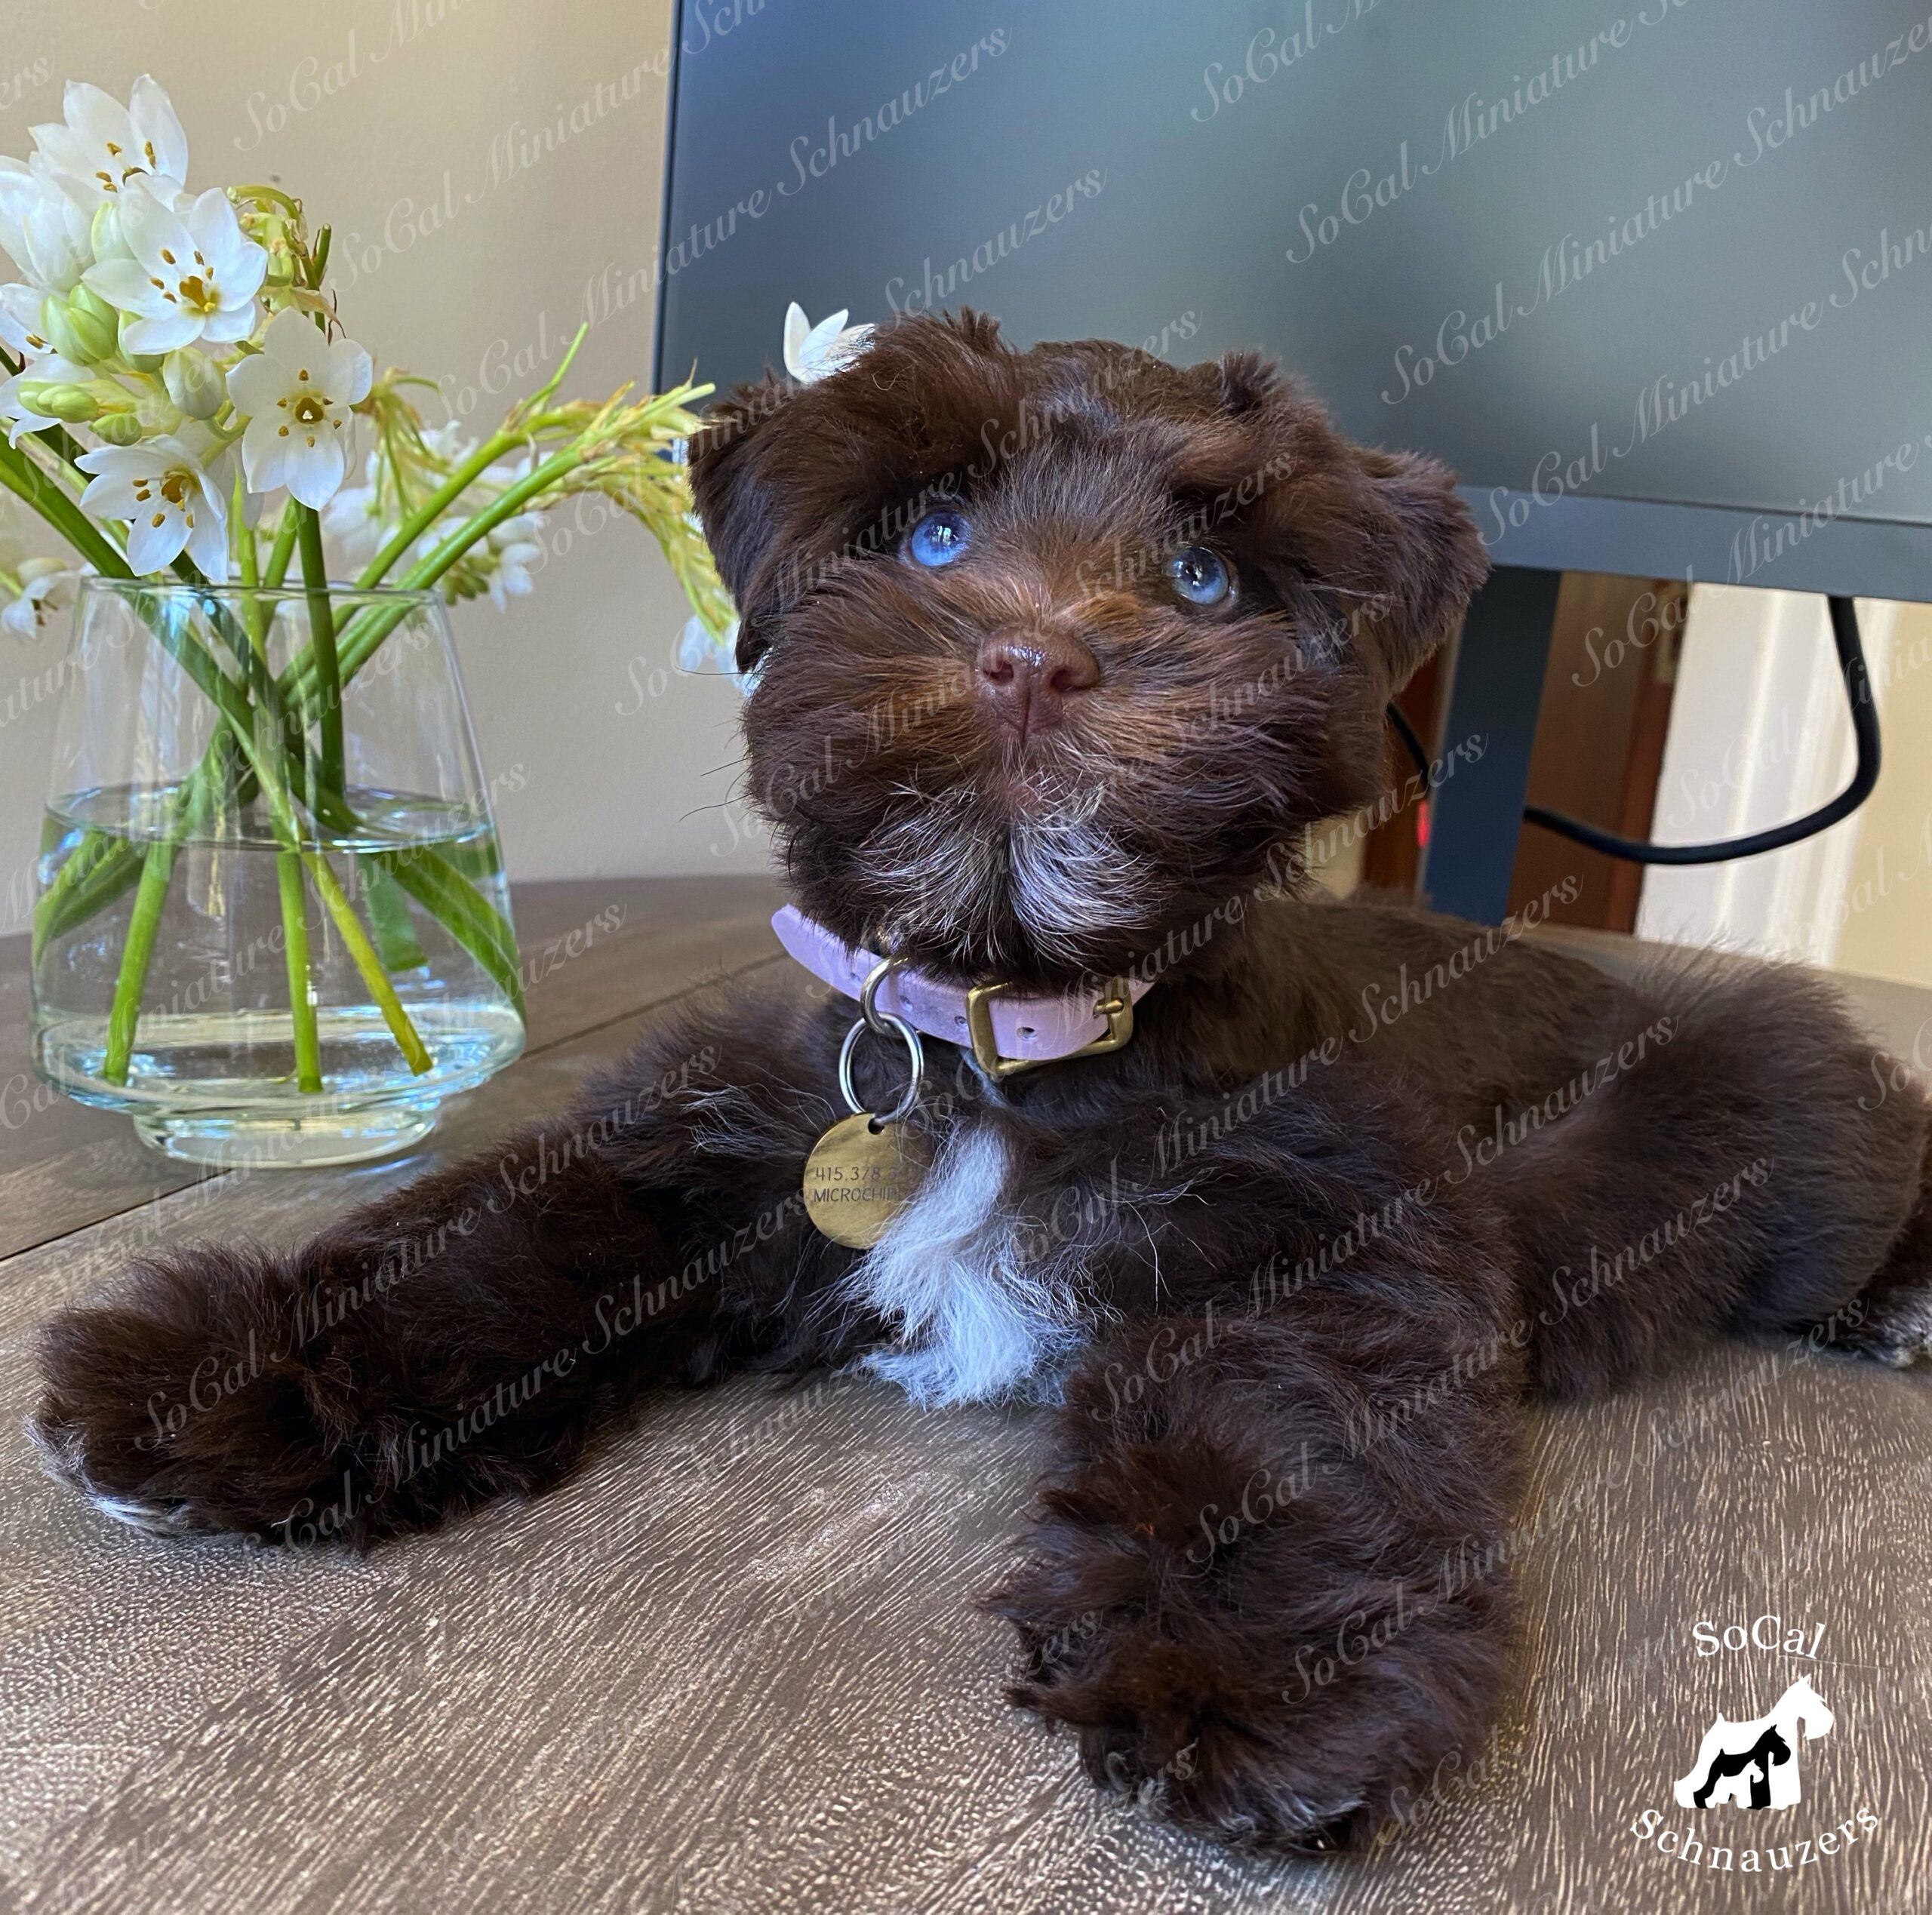 Ice blue eyes with brown schnauzer and flowers in vase